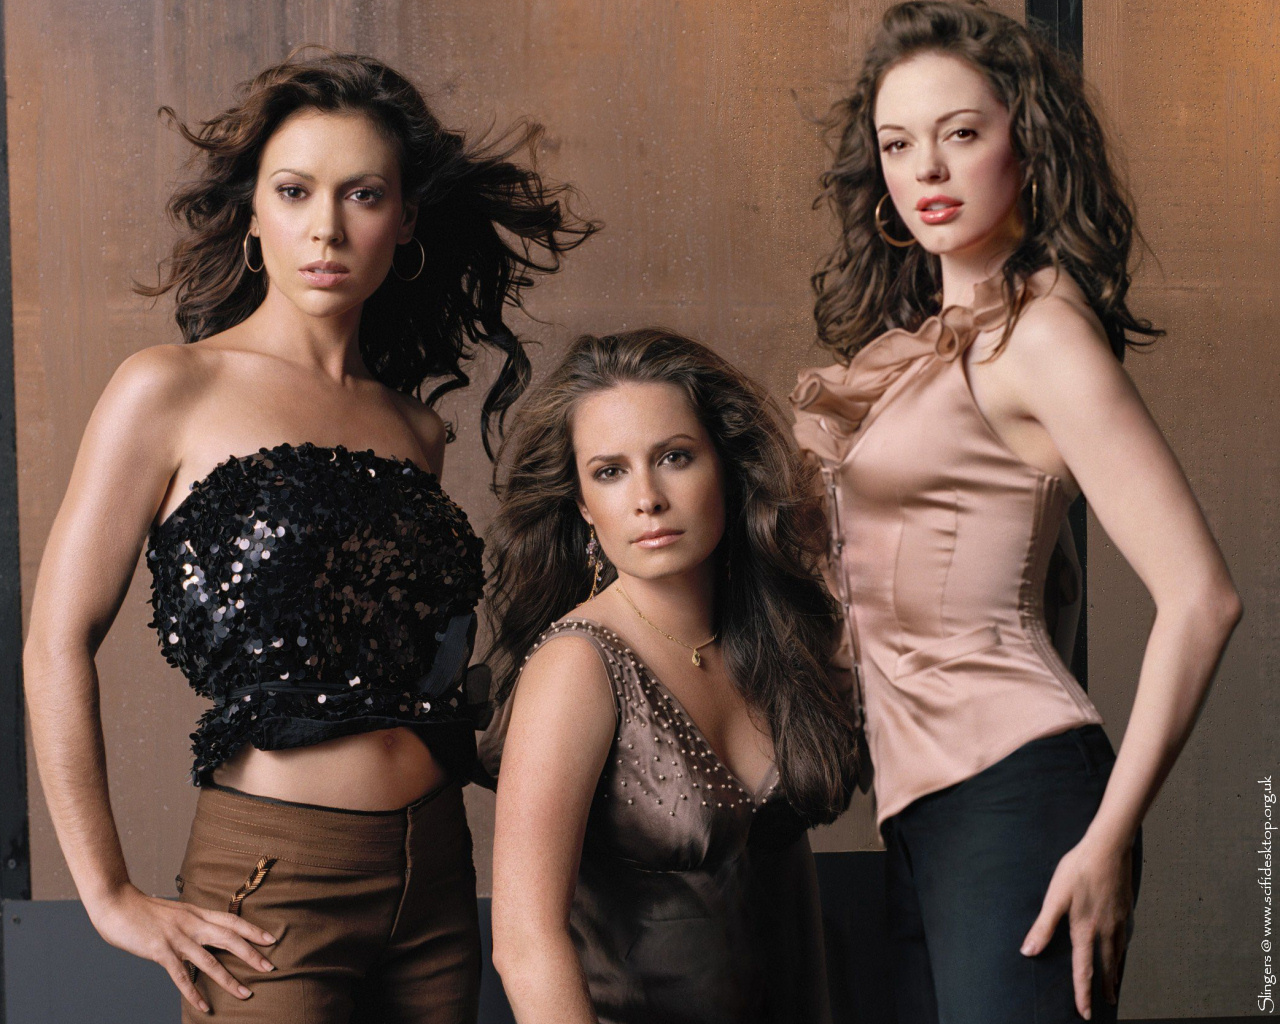 http://images2.fanpop.com/images/photos/3900000/Charmed-Ones-charmed-3989182-1280-1024.jpg